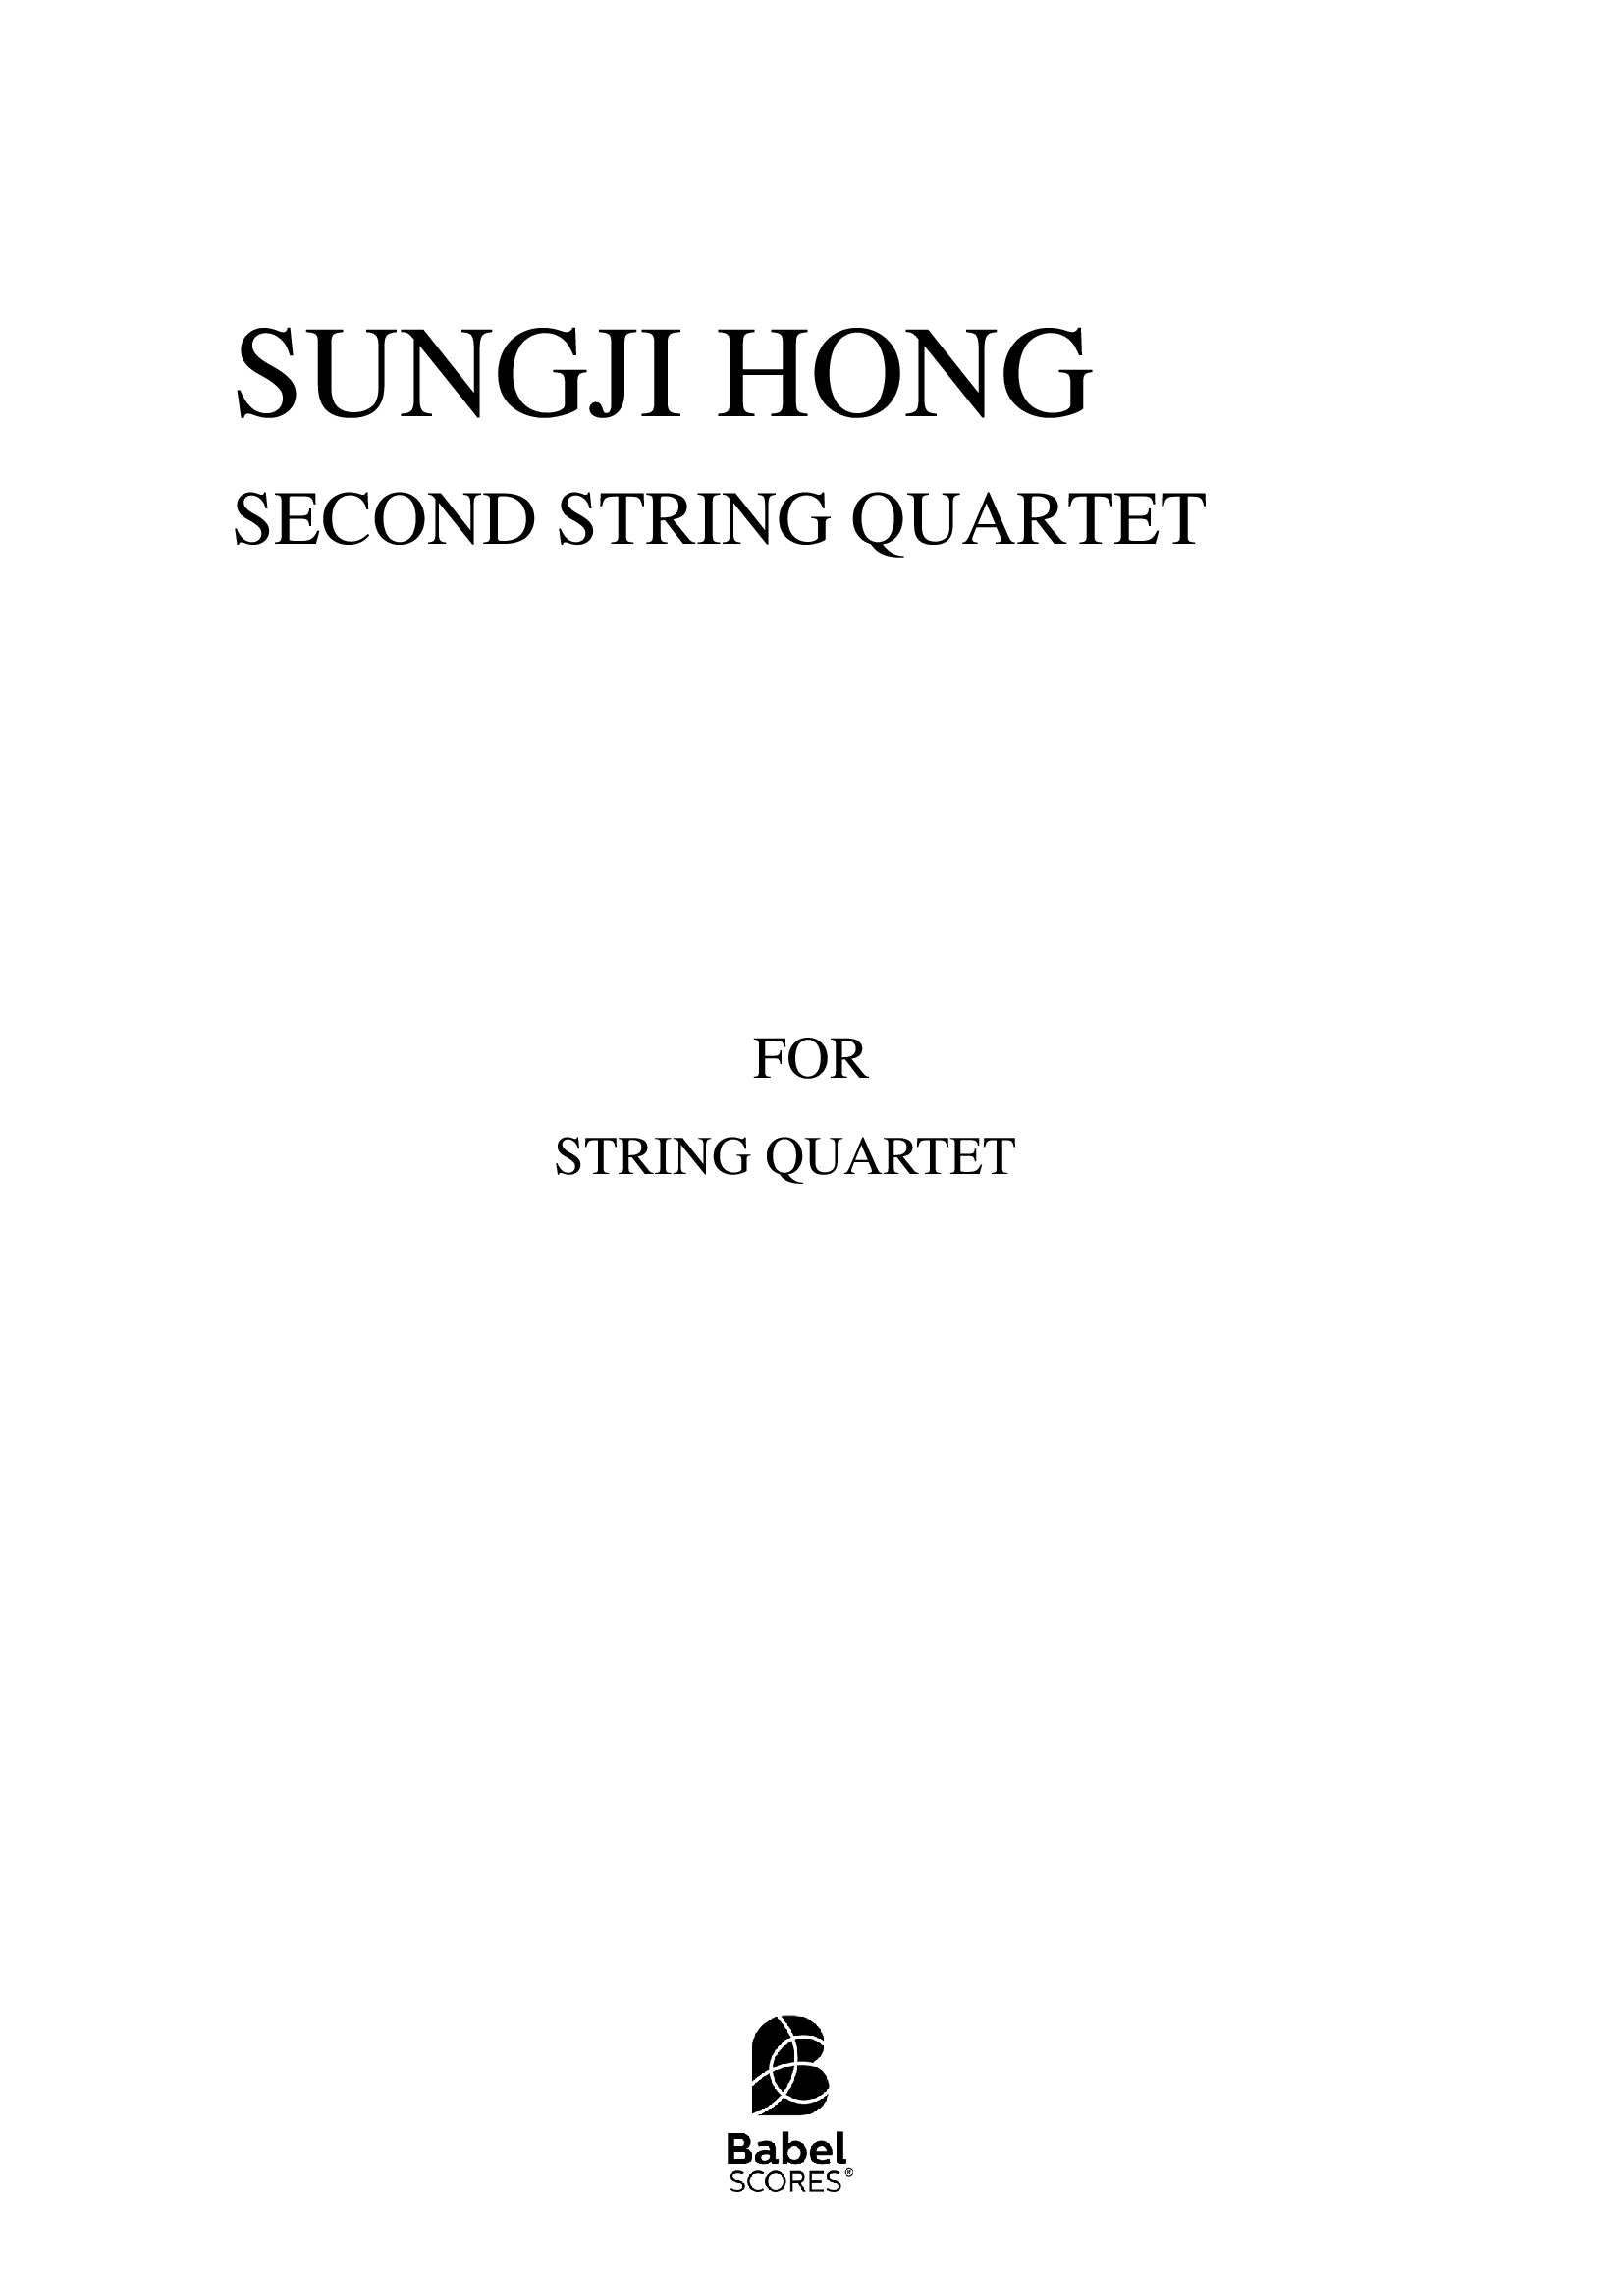 string_quartet_no2_fullscore A4 z 2 1 709